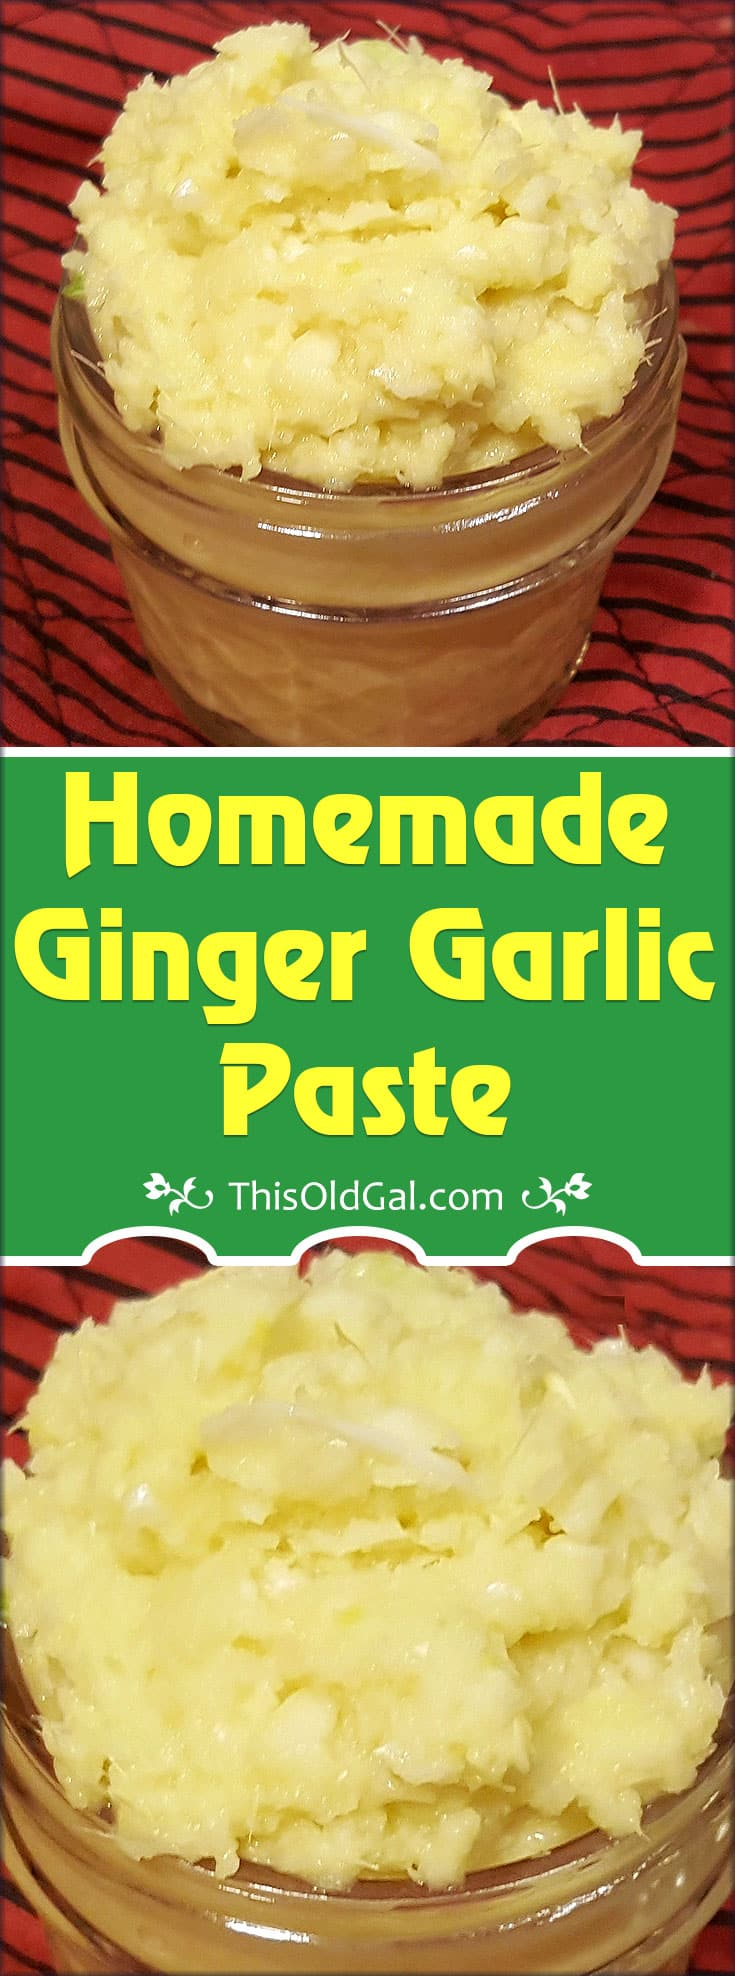 Homemade Ginger Garlic Paste (Indian Cooking)